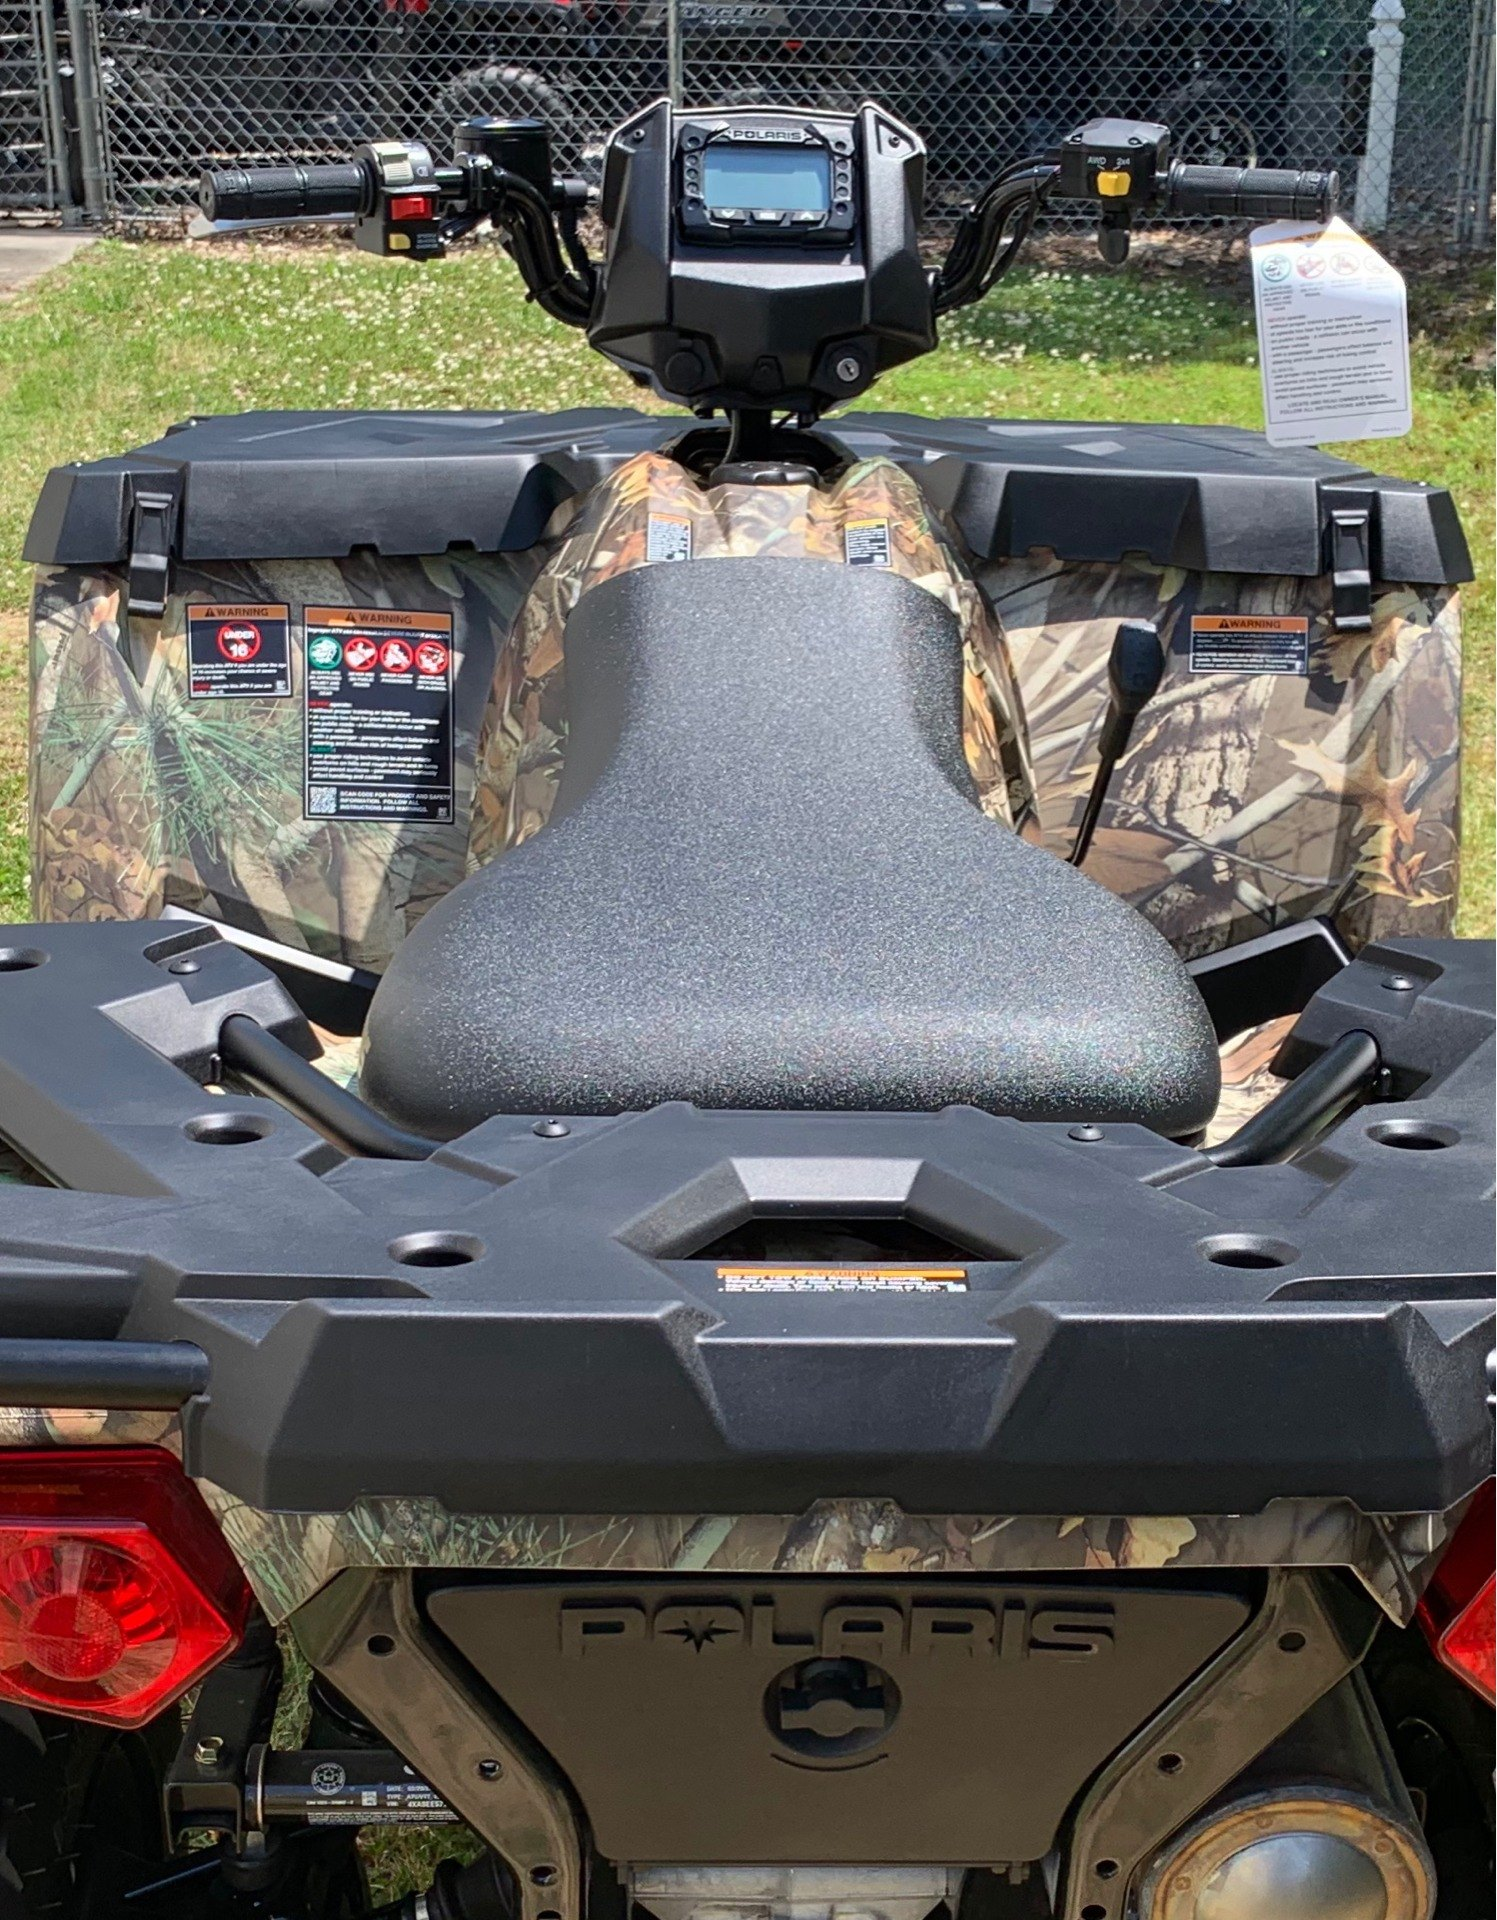 2019 Polaris Sportsman 570 EPS Camo in High Point, North Carolina - Photo 9